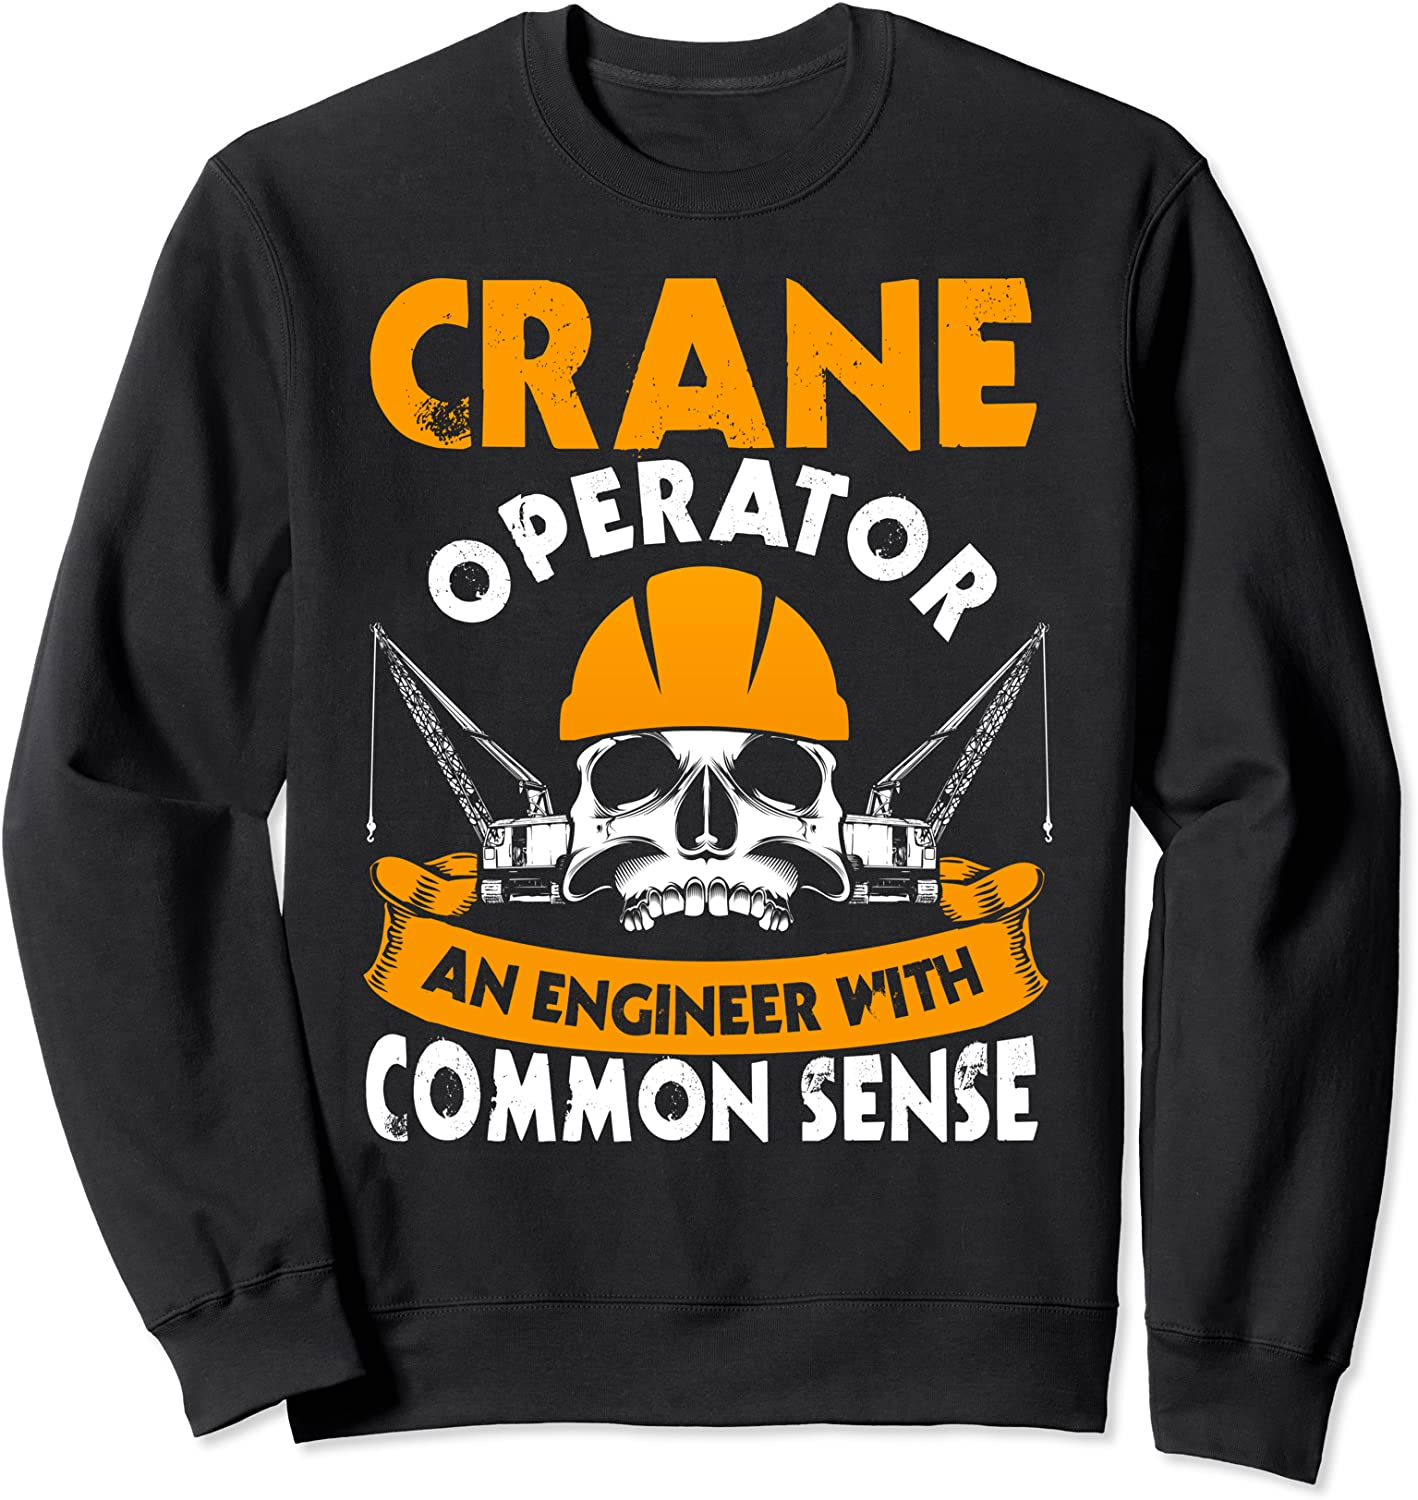 Crane Operator Gifts An Super-cheap Engineer Opening large release sale Sweatshirt Commone With Sense